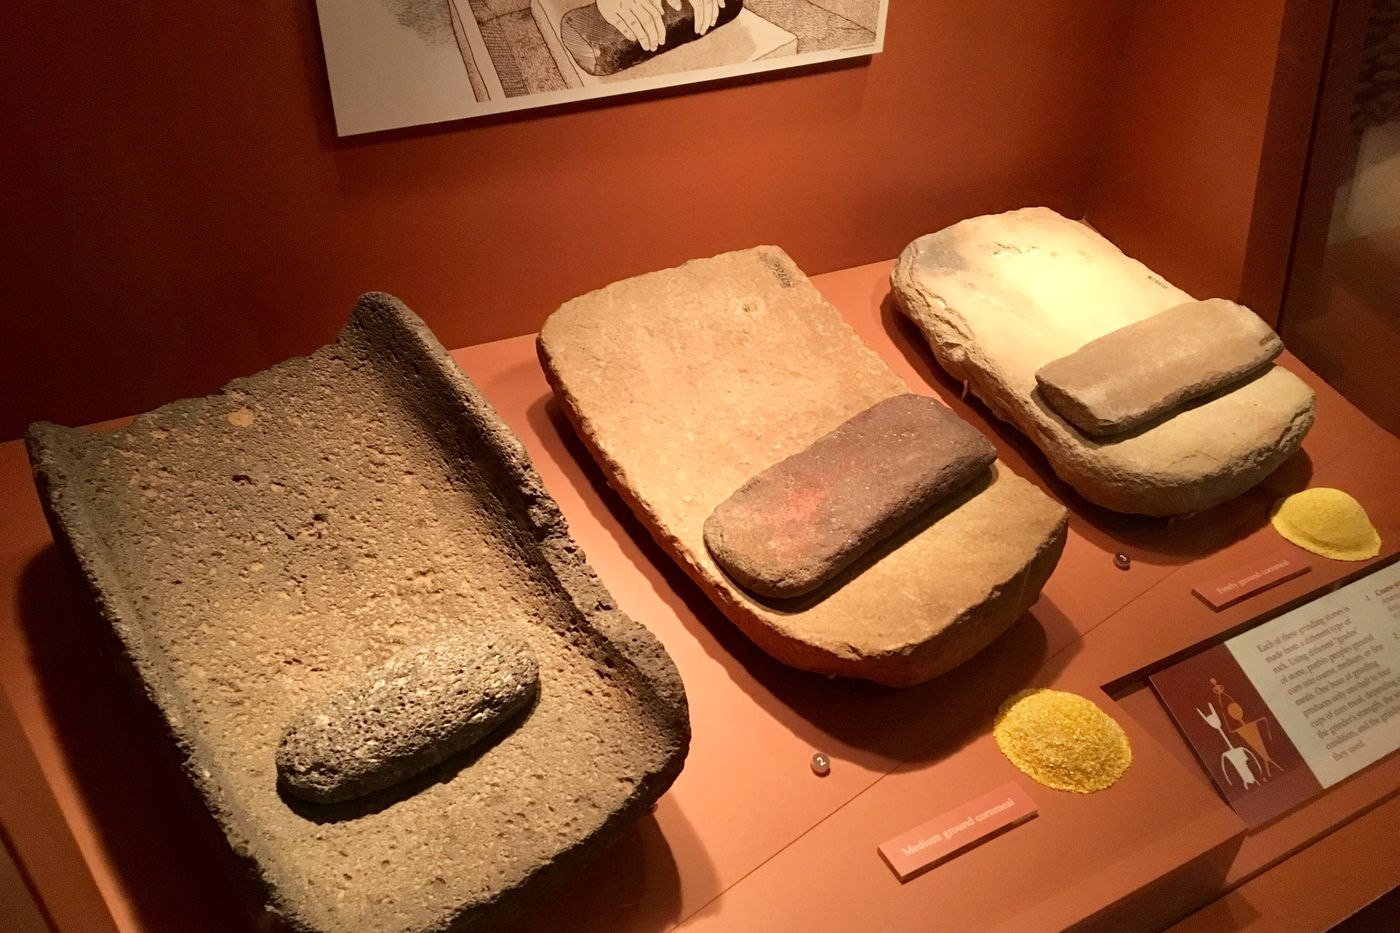 Three rectangular stone slabs with smaller stones to be used as a grinding tool